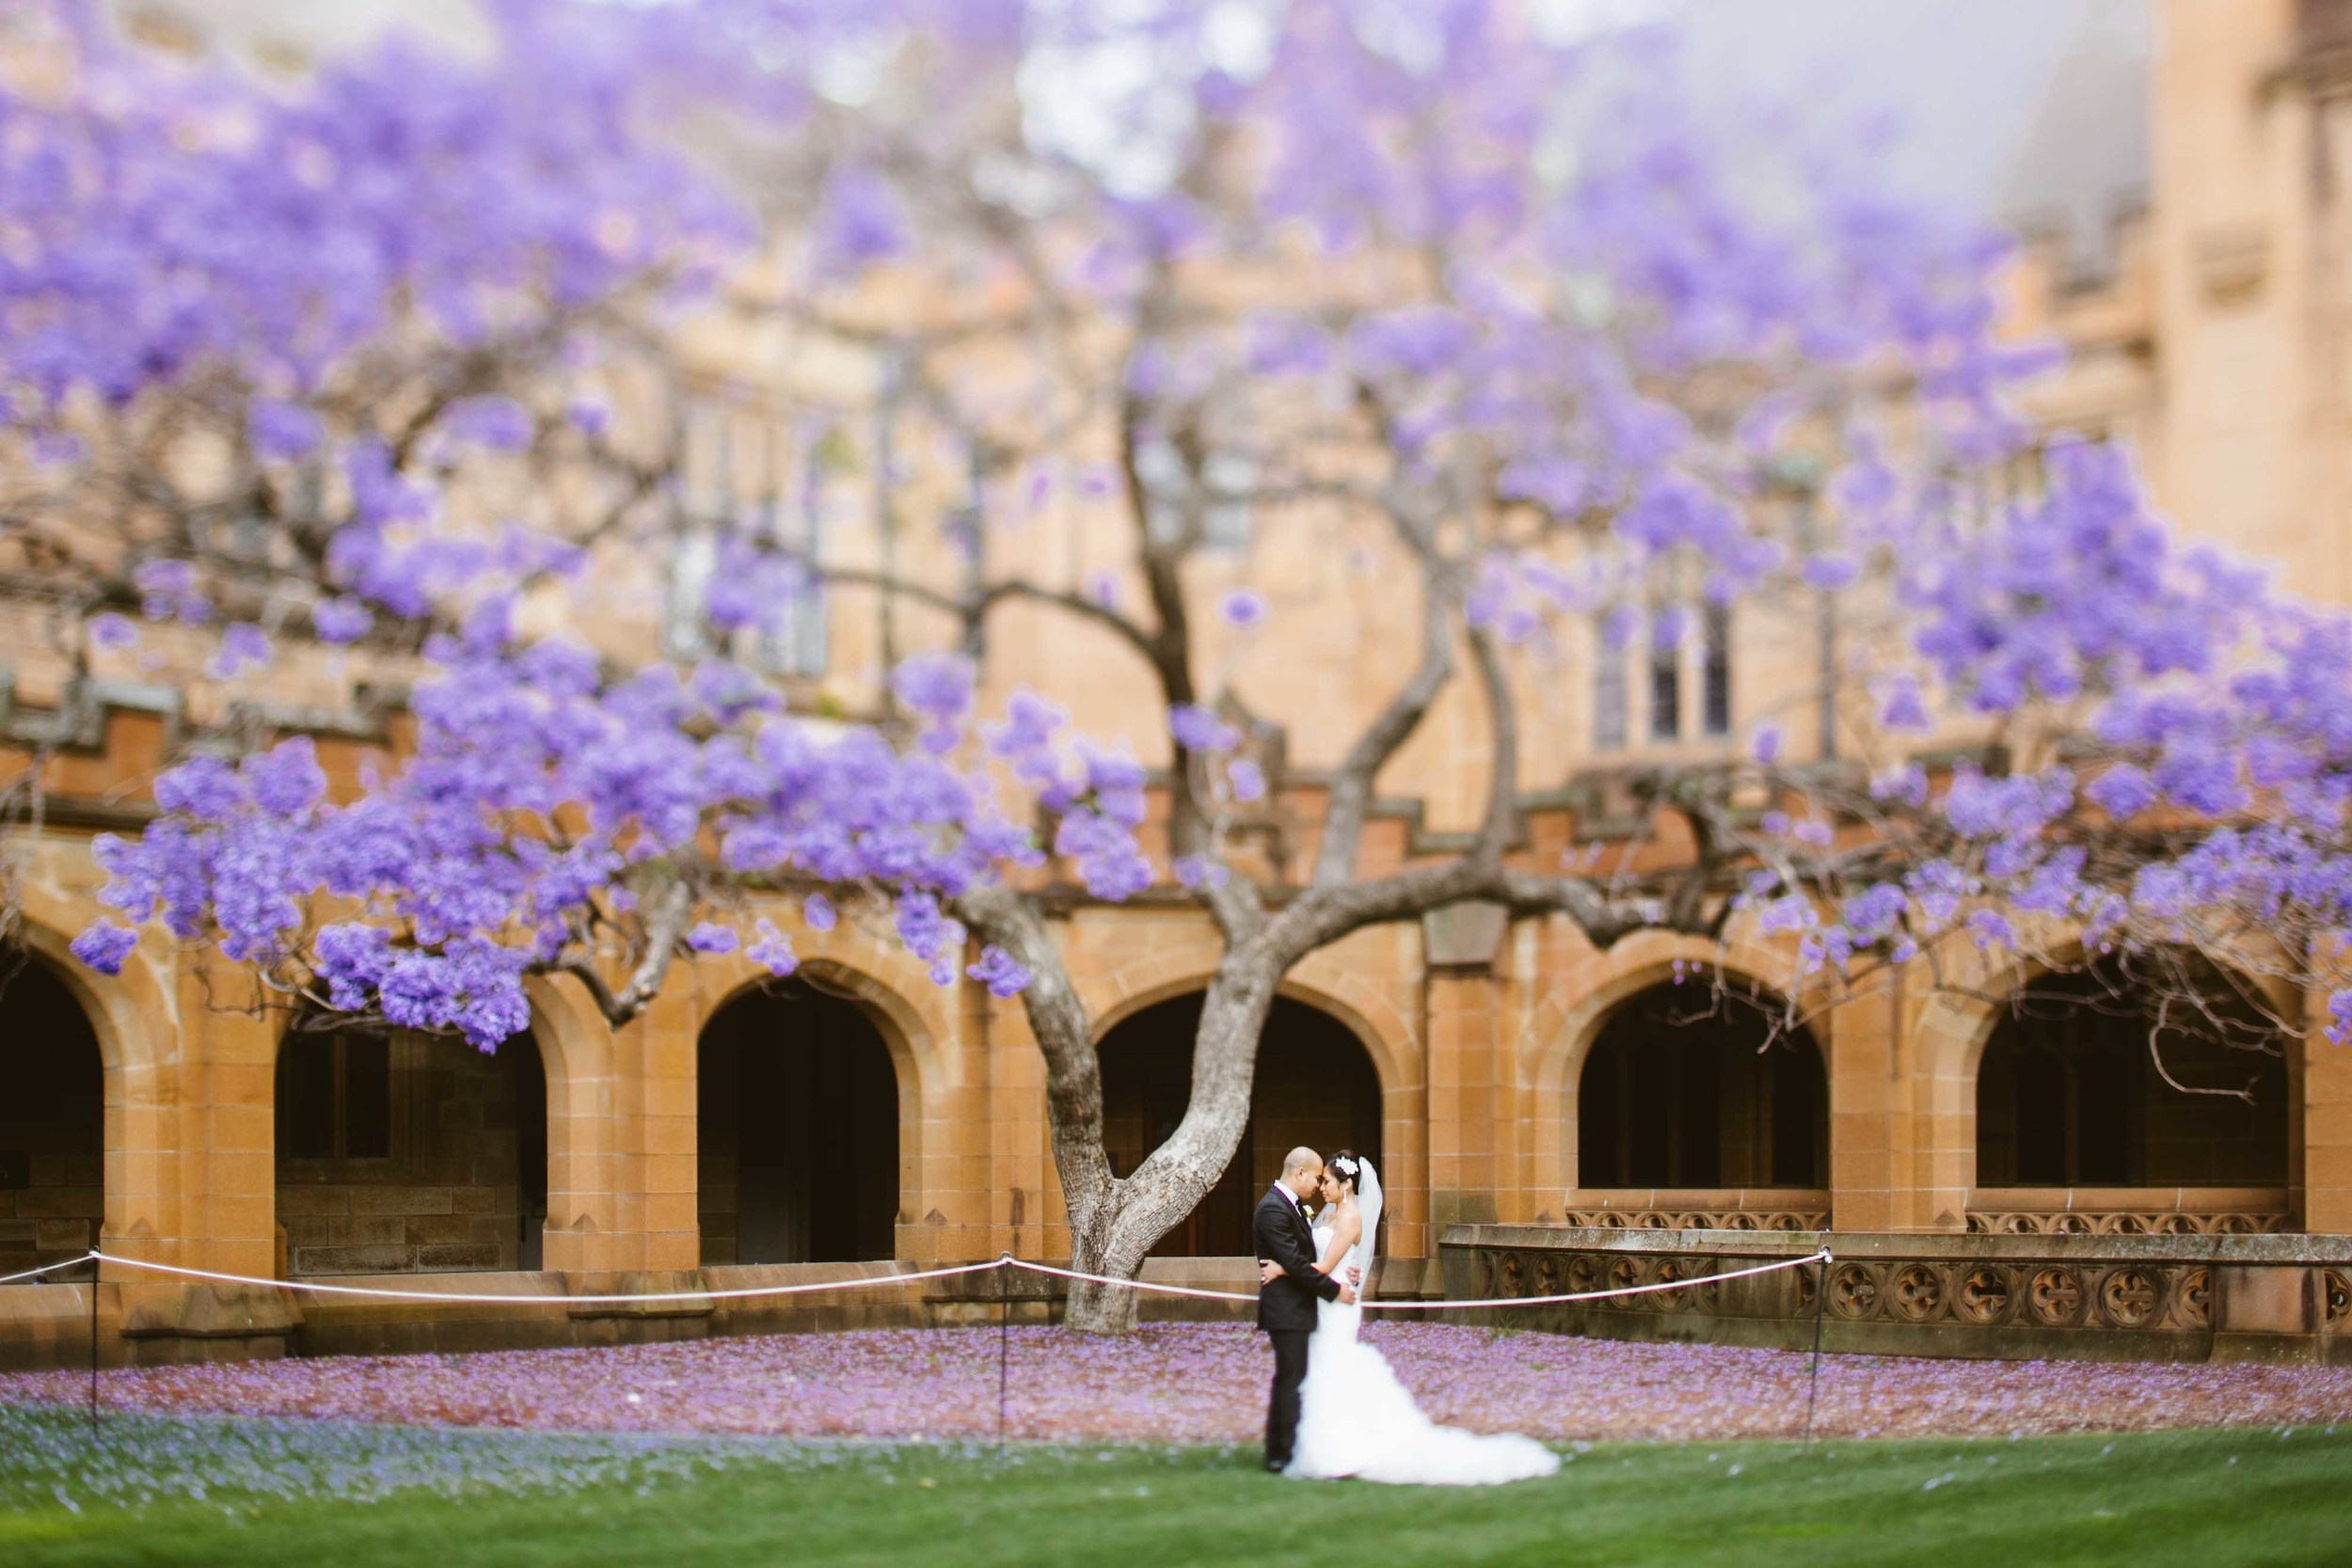 Arvee and Ricky wedding Sydney University by Milton Gan